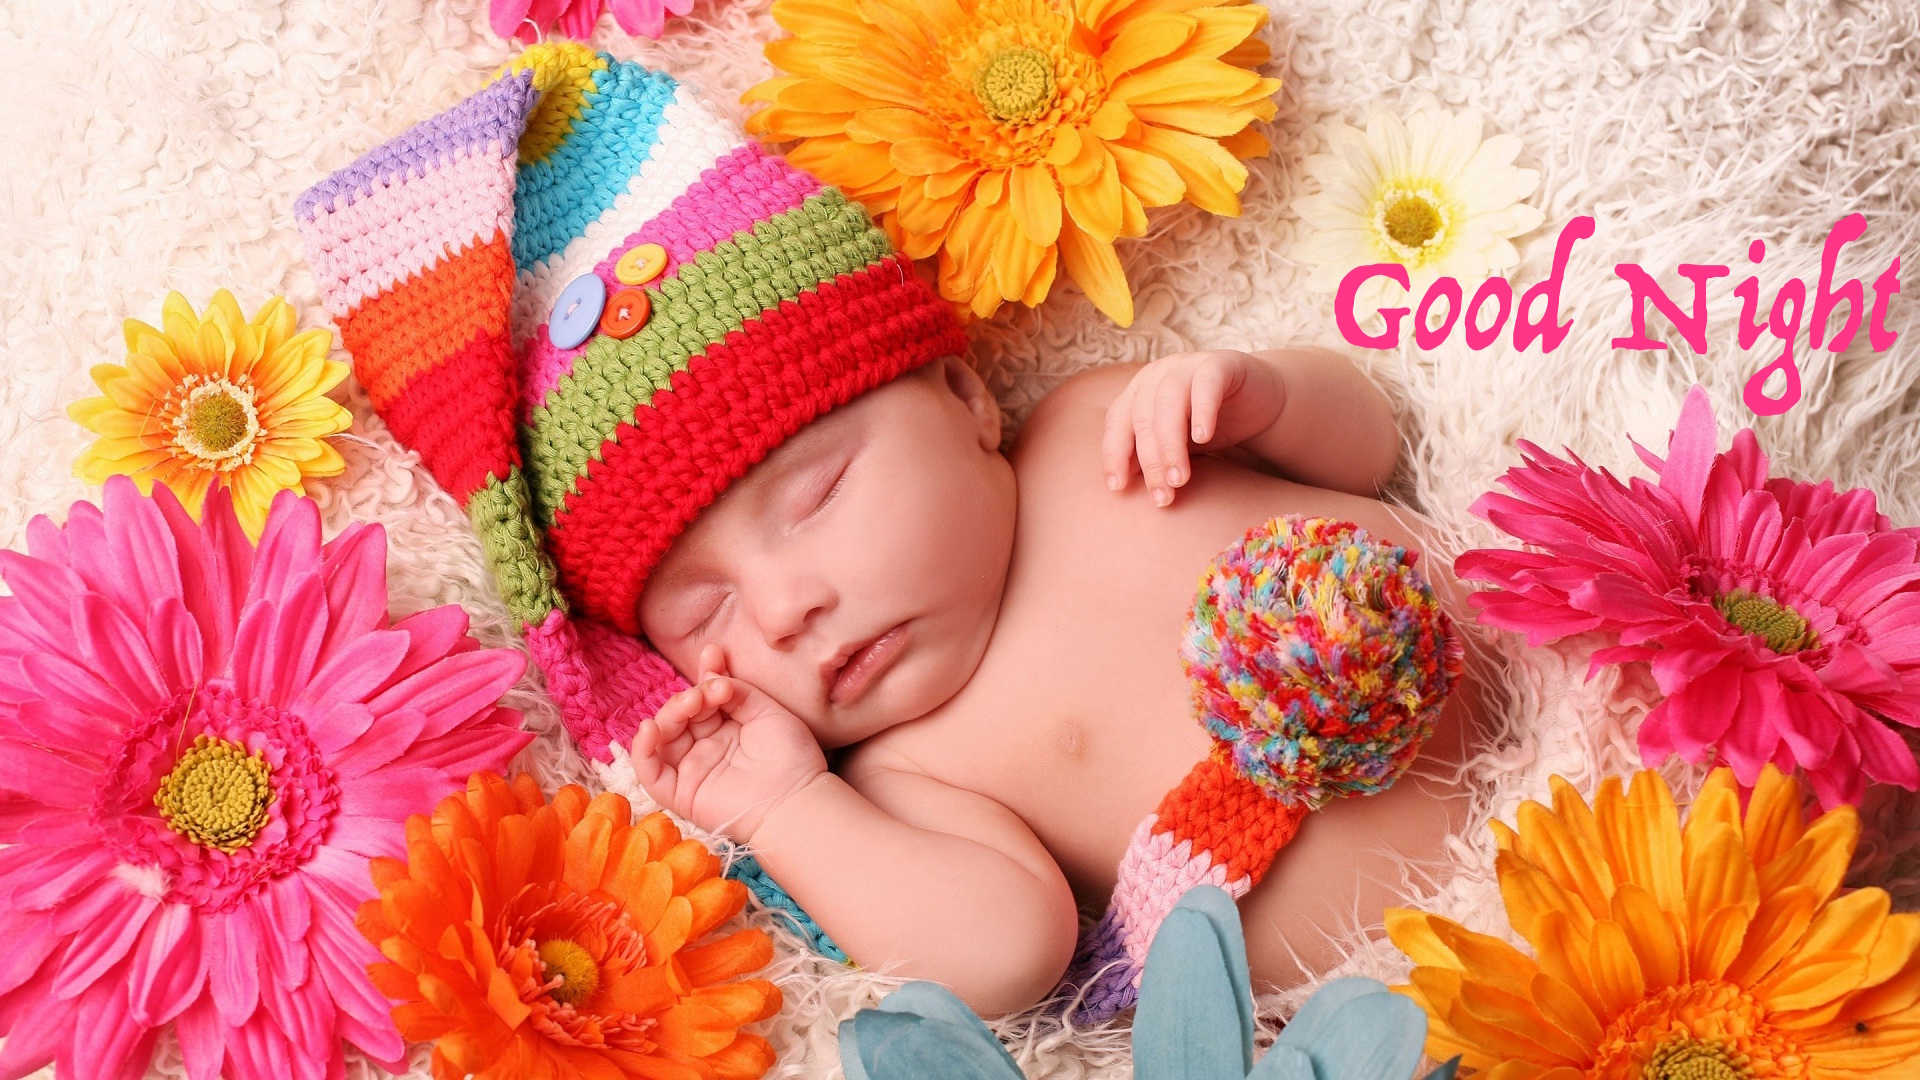 Good night baby flowers bed image